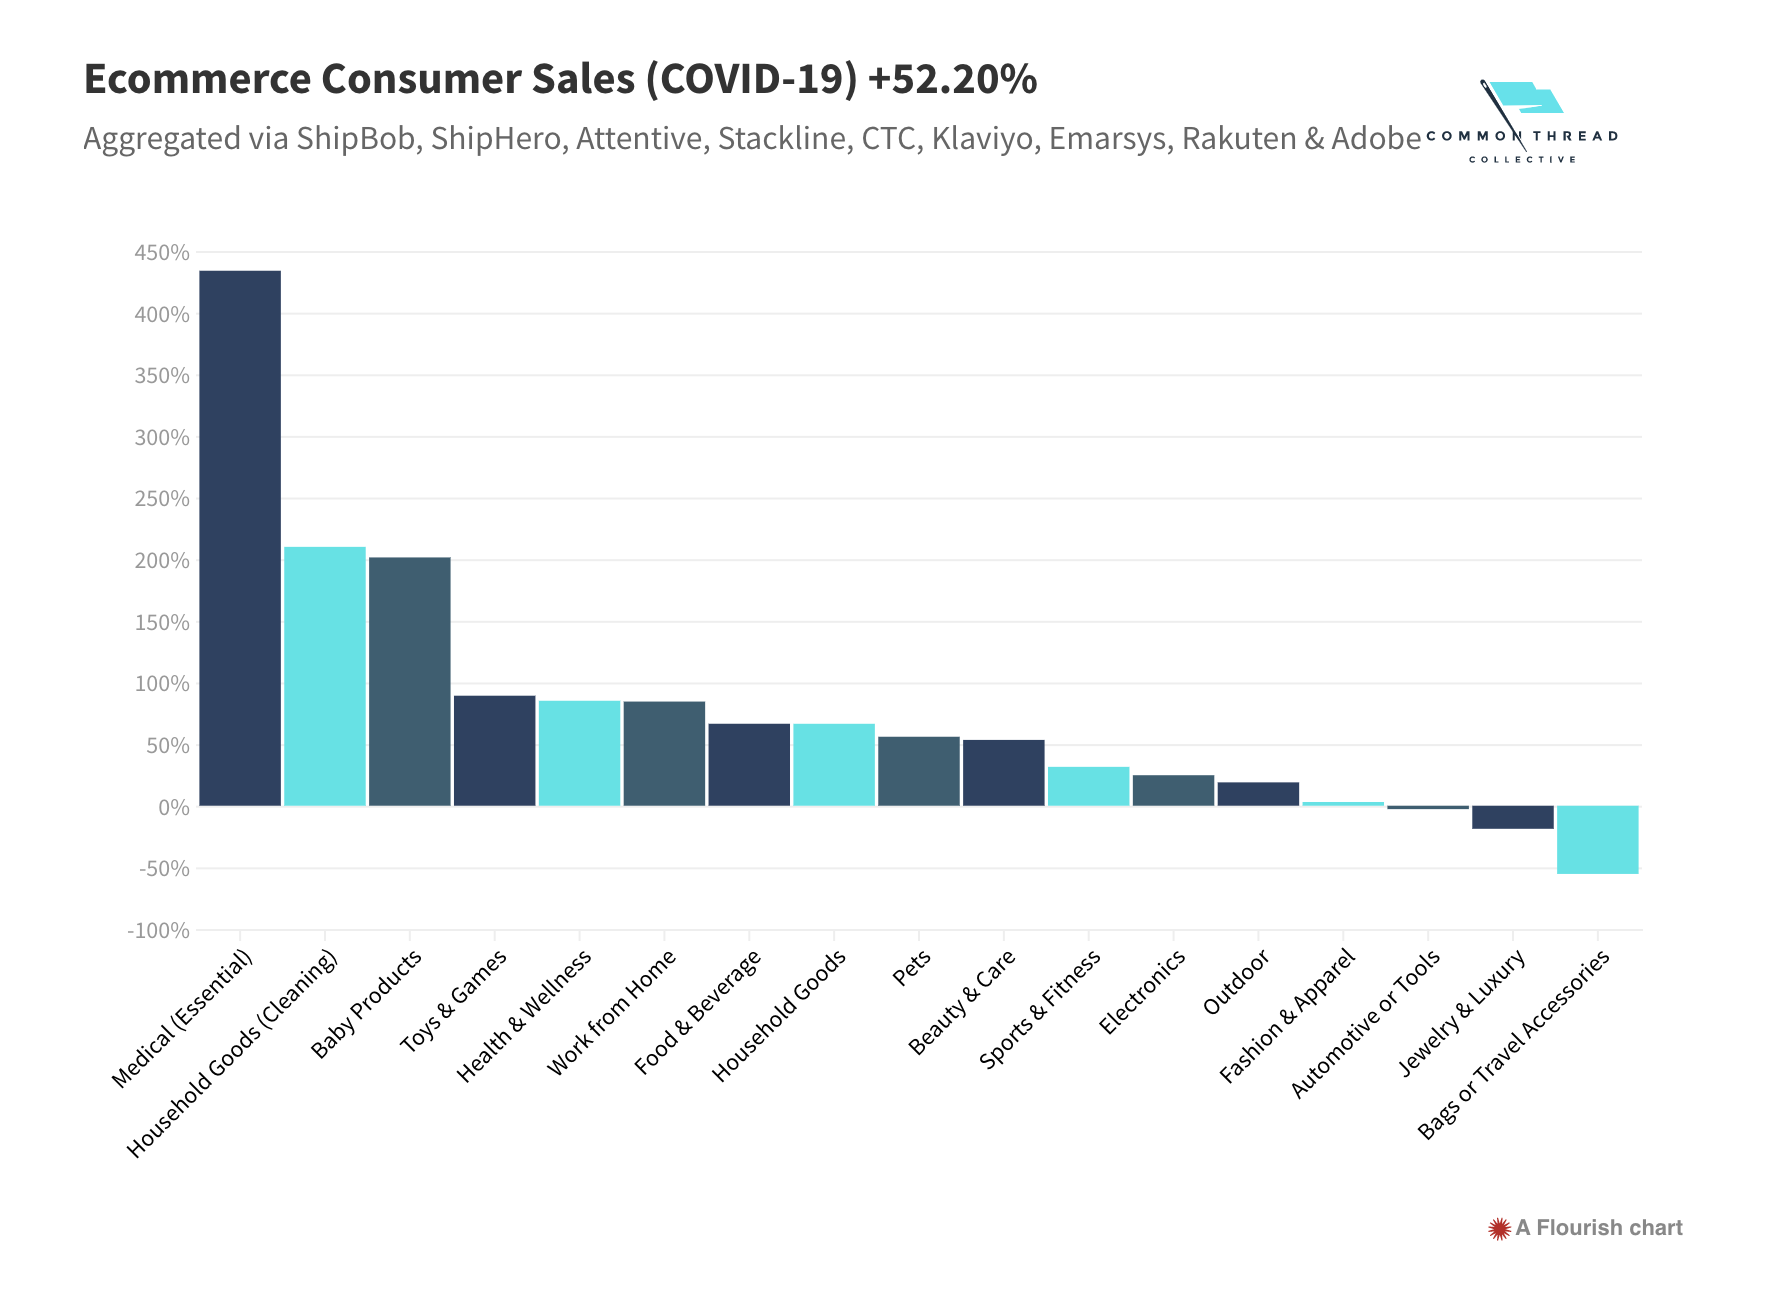 Common Thread Collective's graph showing positive increases in consumer sales for 14 categories.